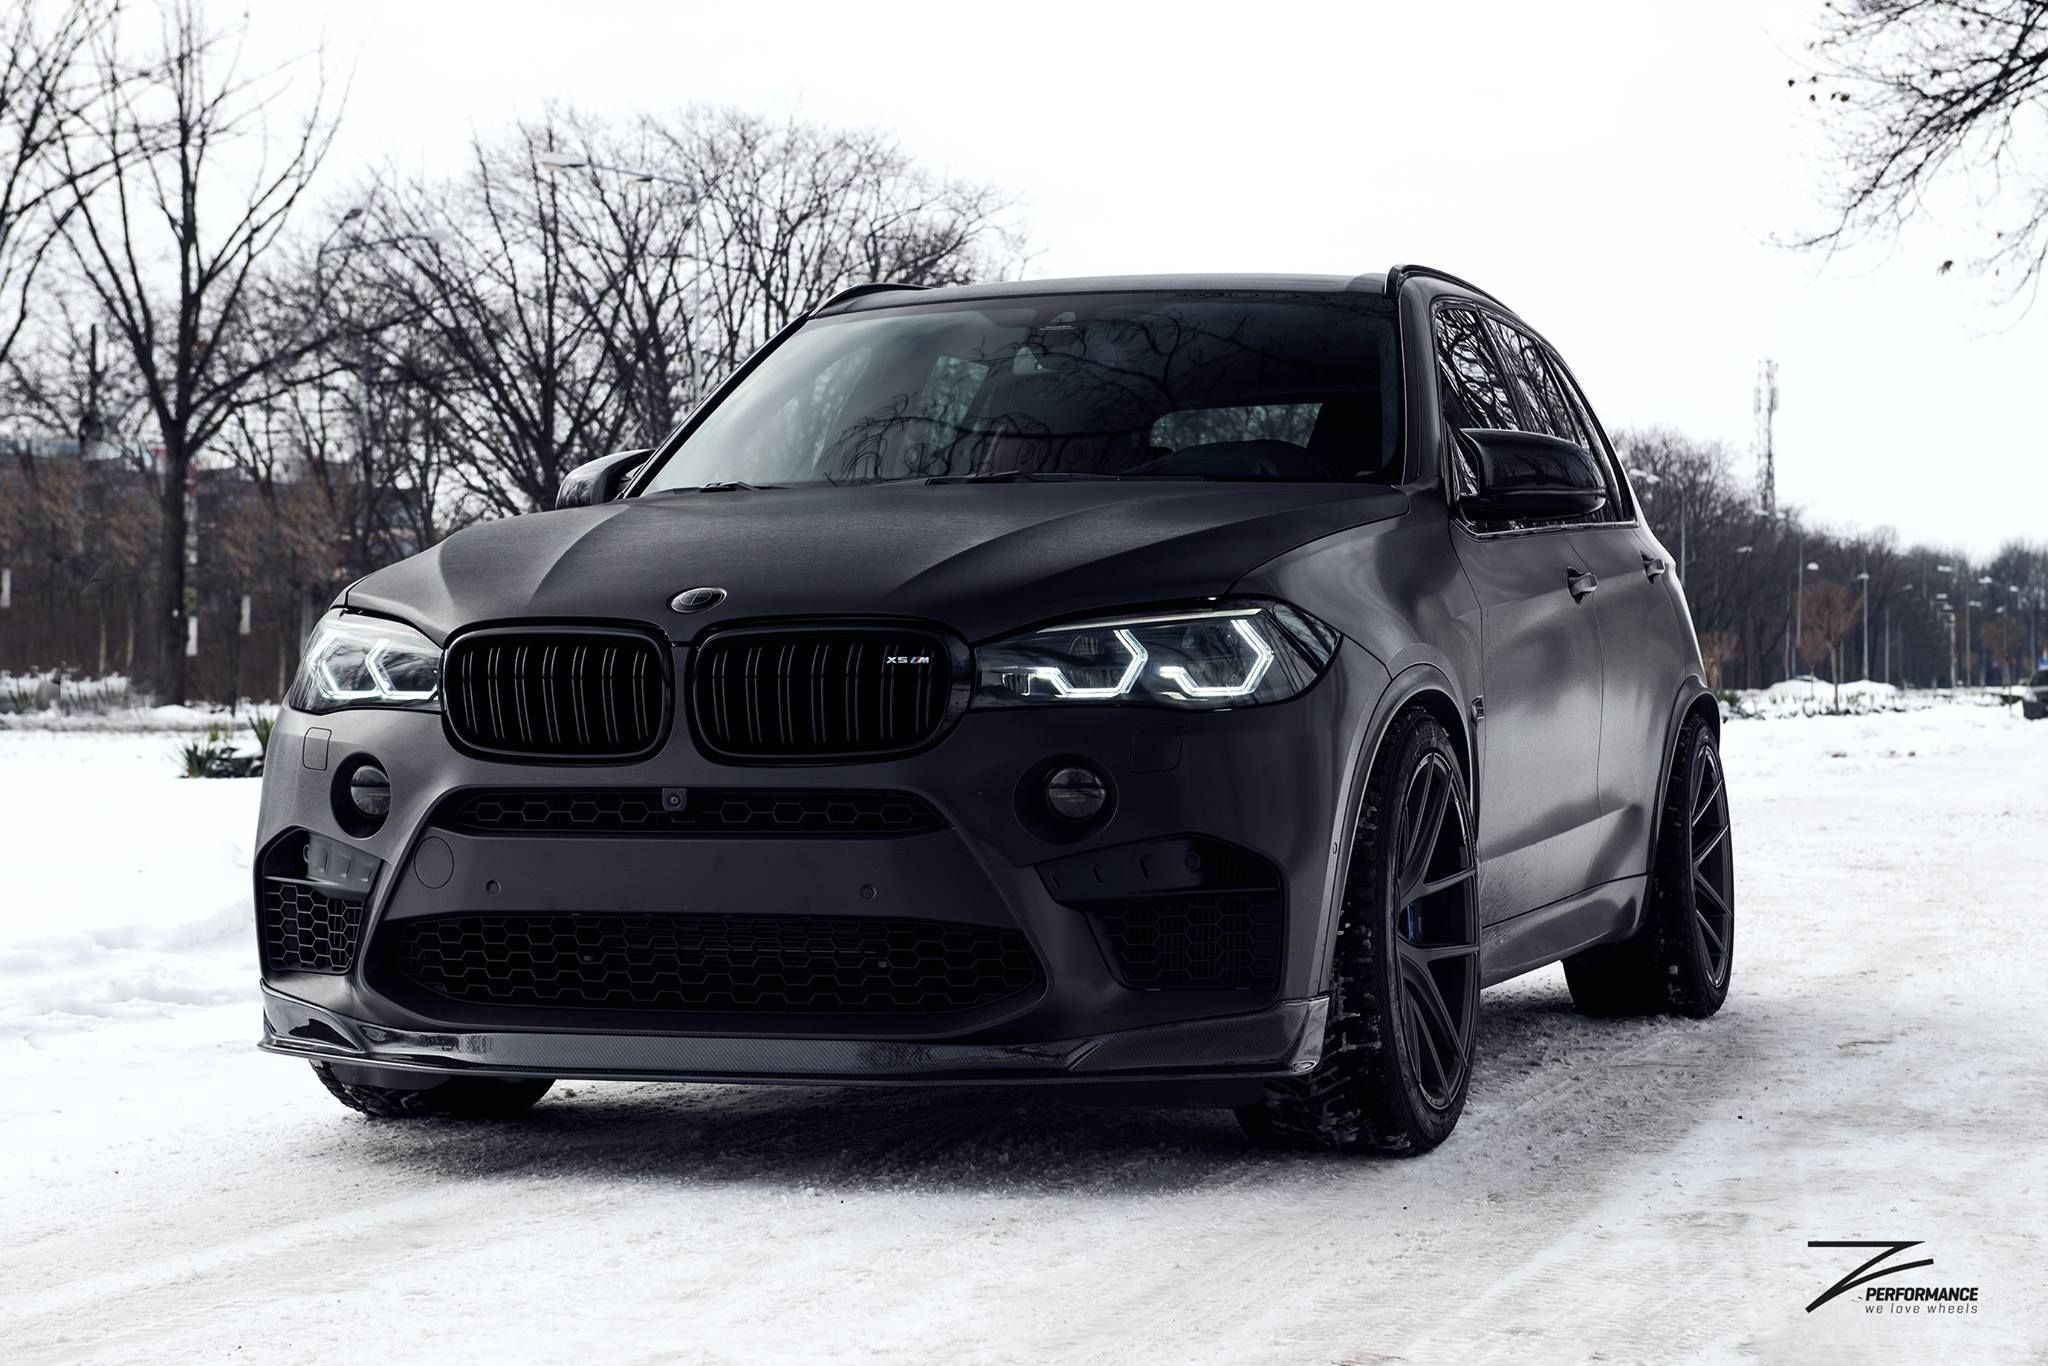 BMW F85 X5M SapphireBlack MPerformance xDrive Drift